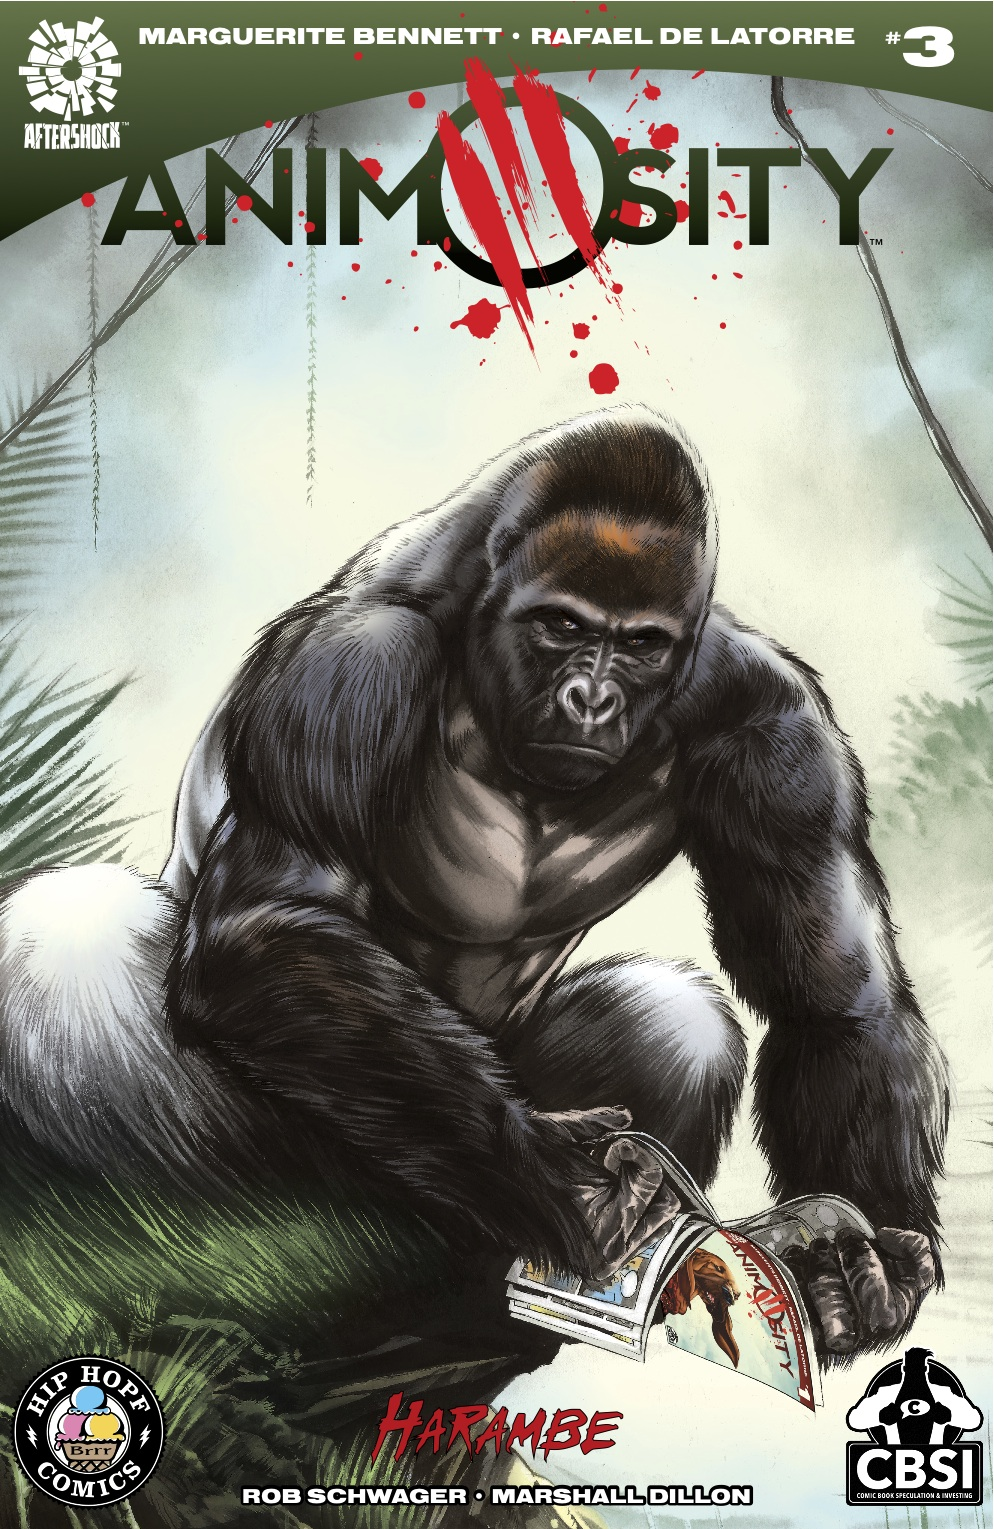 Animosity #3 Hip Hopf Comics HARAMBE variant